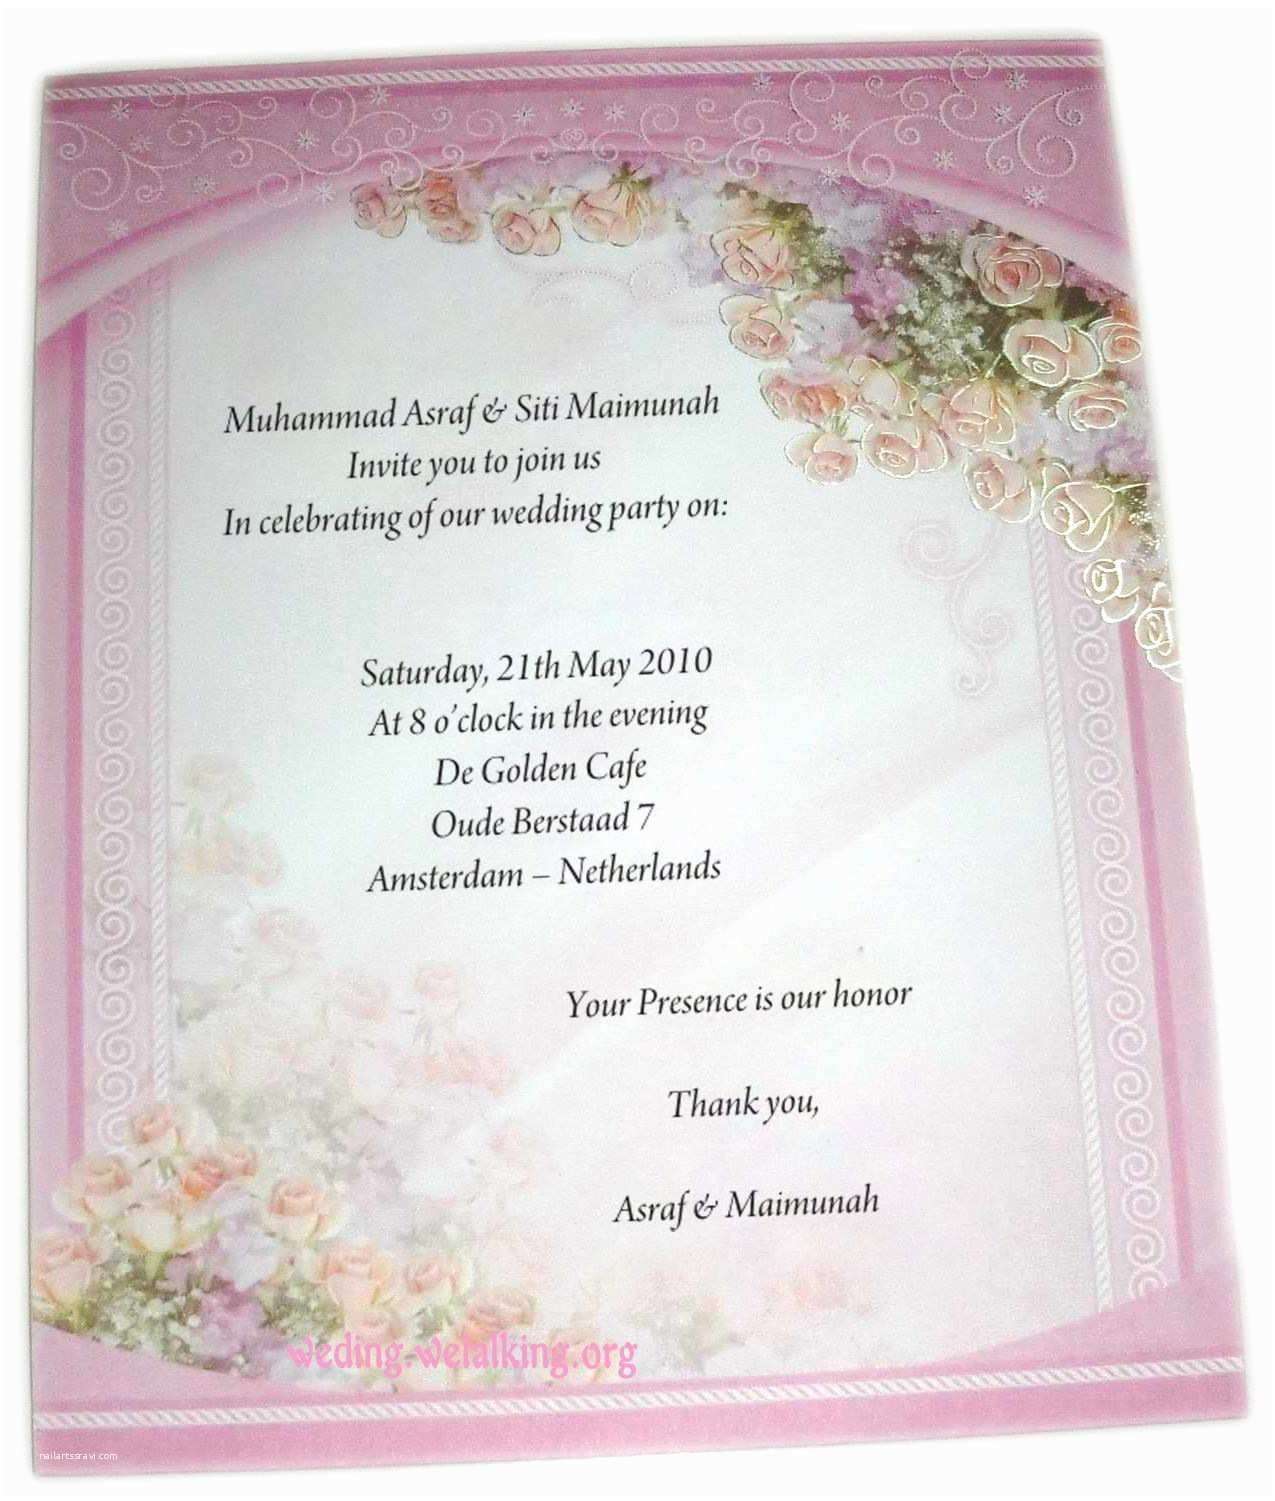 Wedding Invitation Sample Wording Zahra Alya Expressions Of Invitation and Followed by the